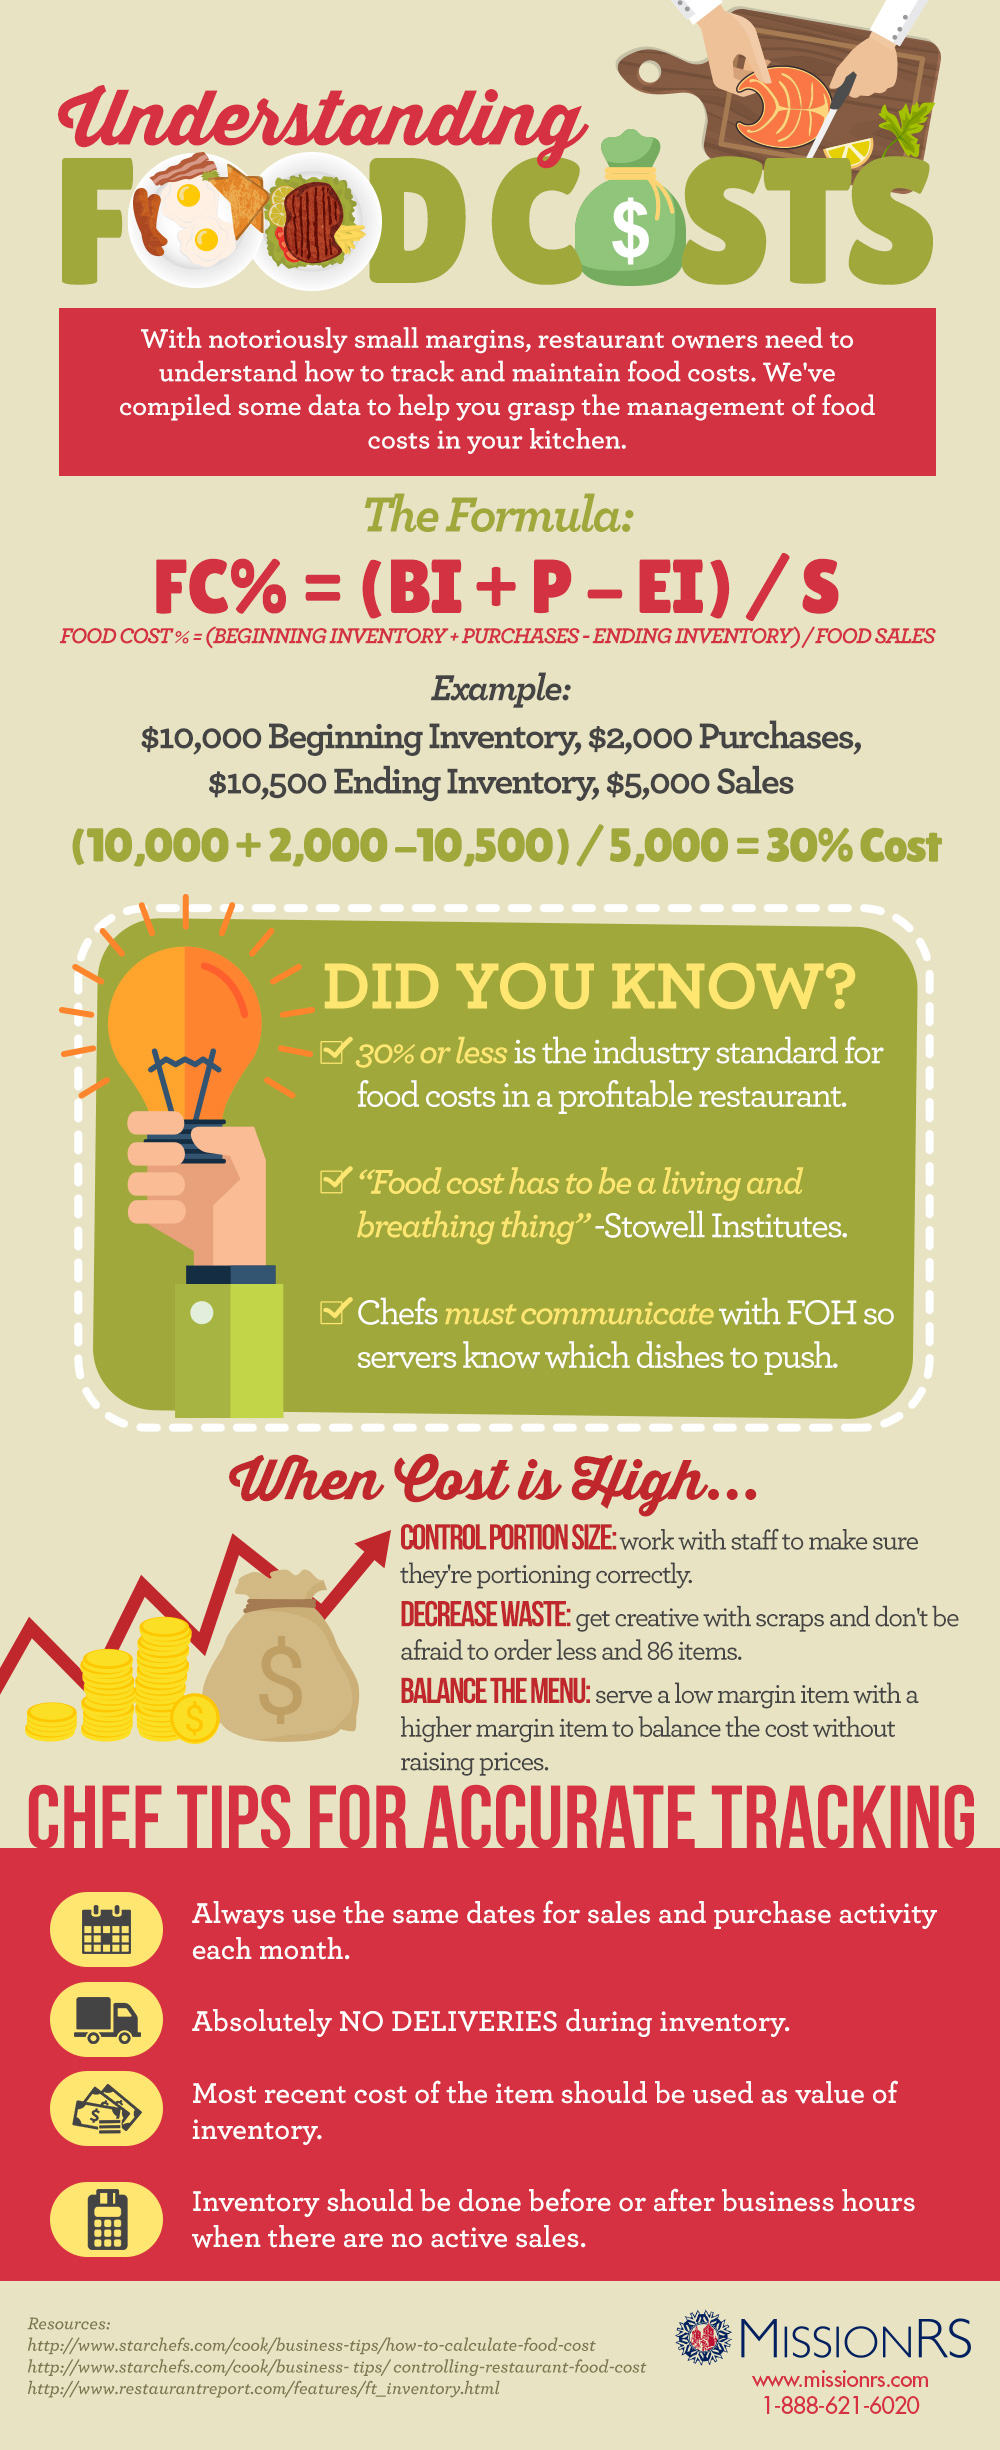 Understanding food costs infographic